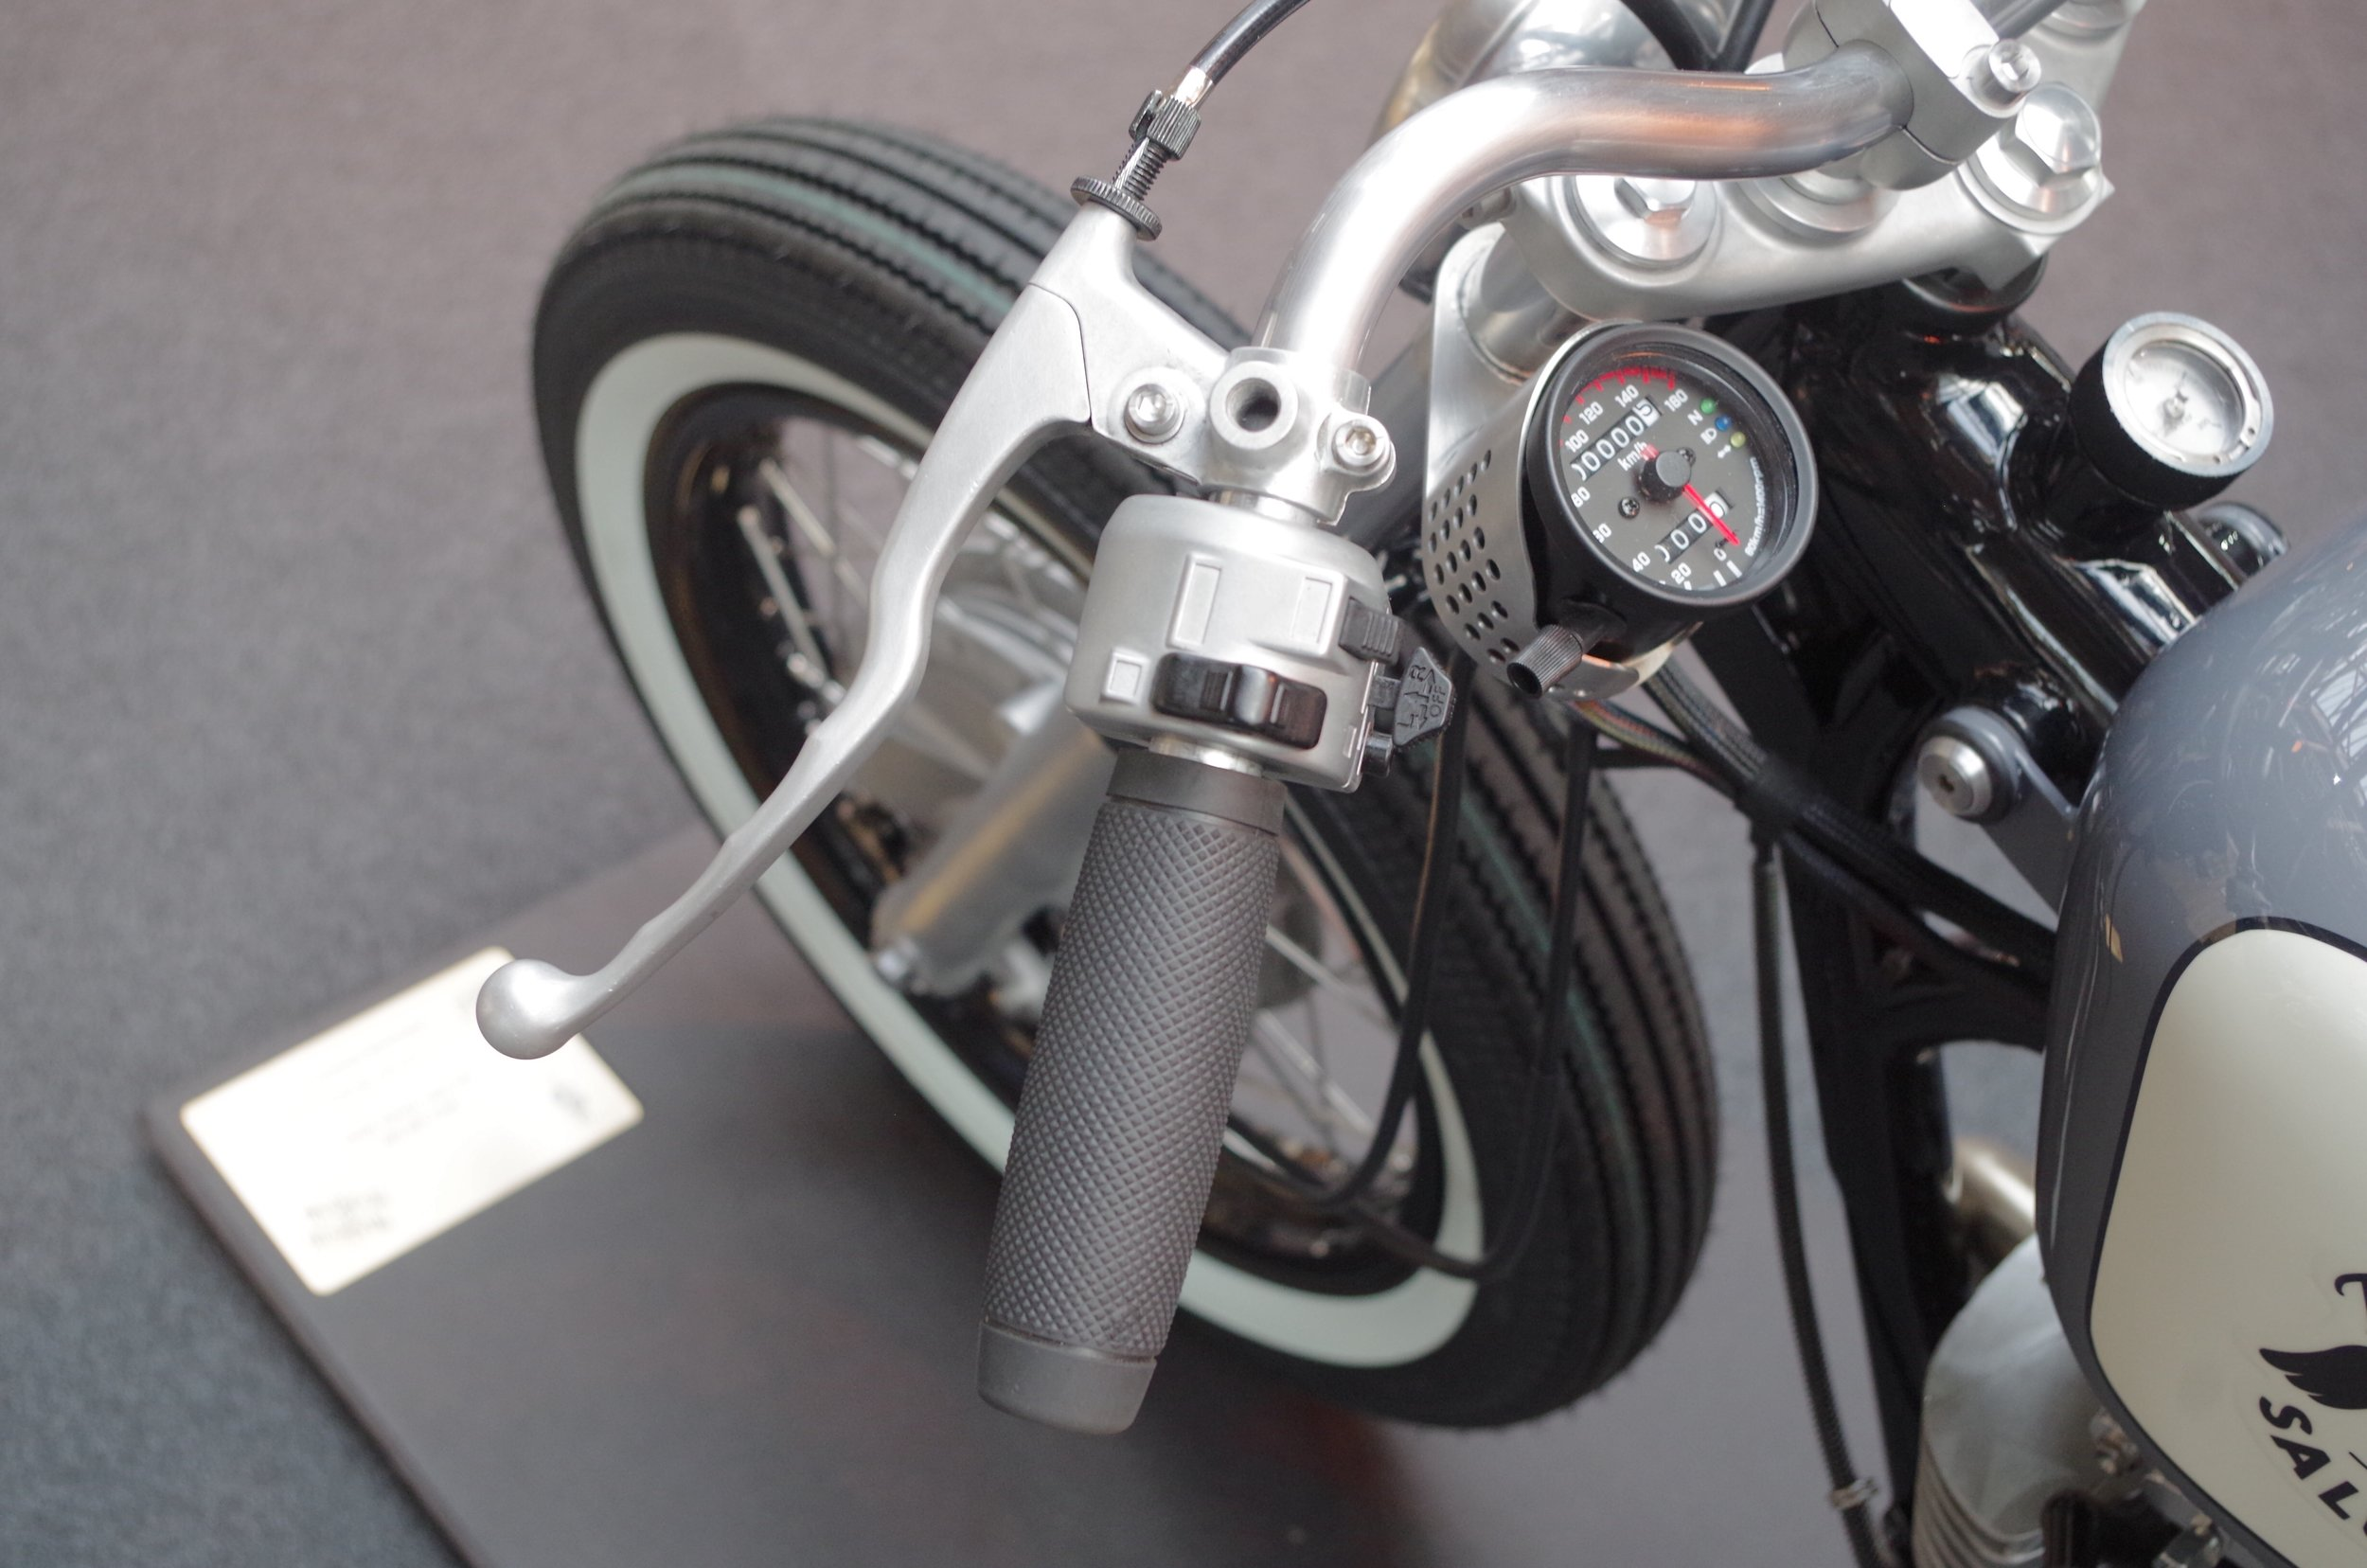 Neat fork mounted speedo basket is a one-off fabricated by Jamie